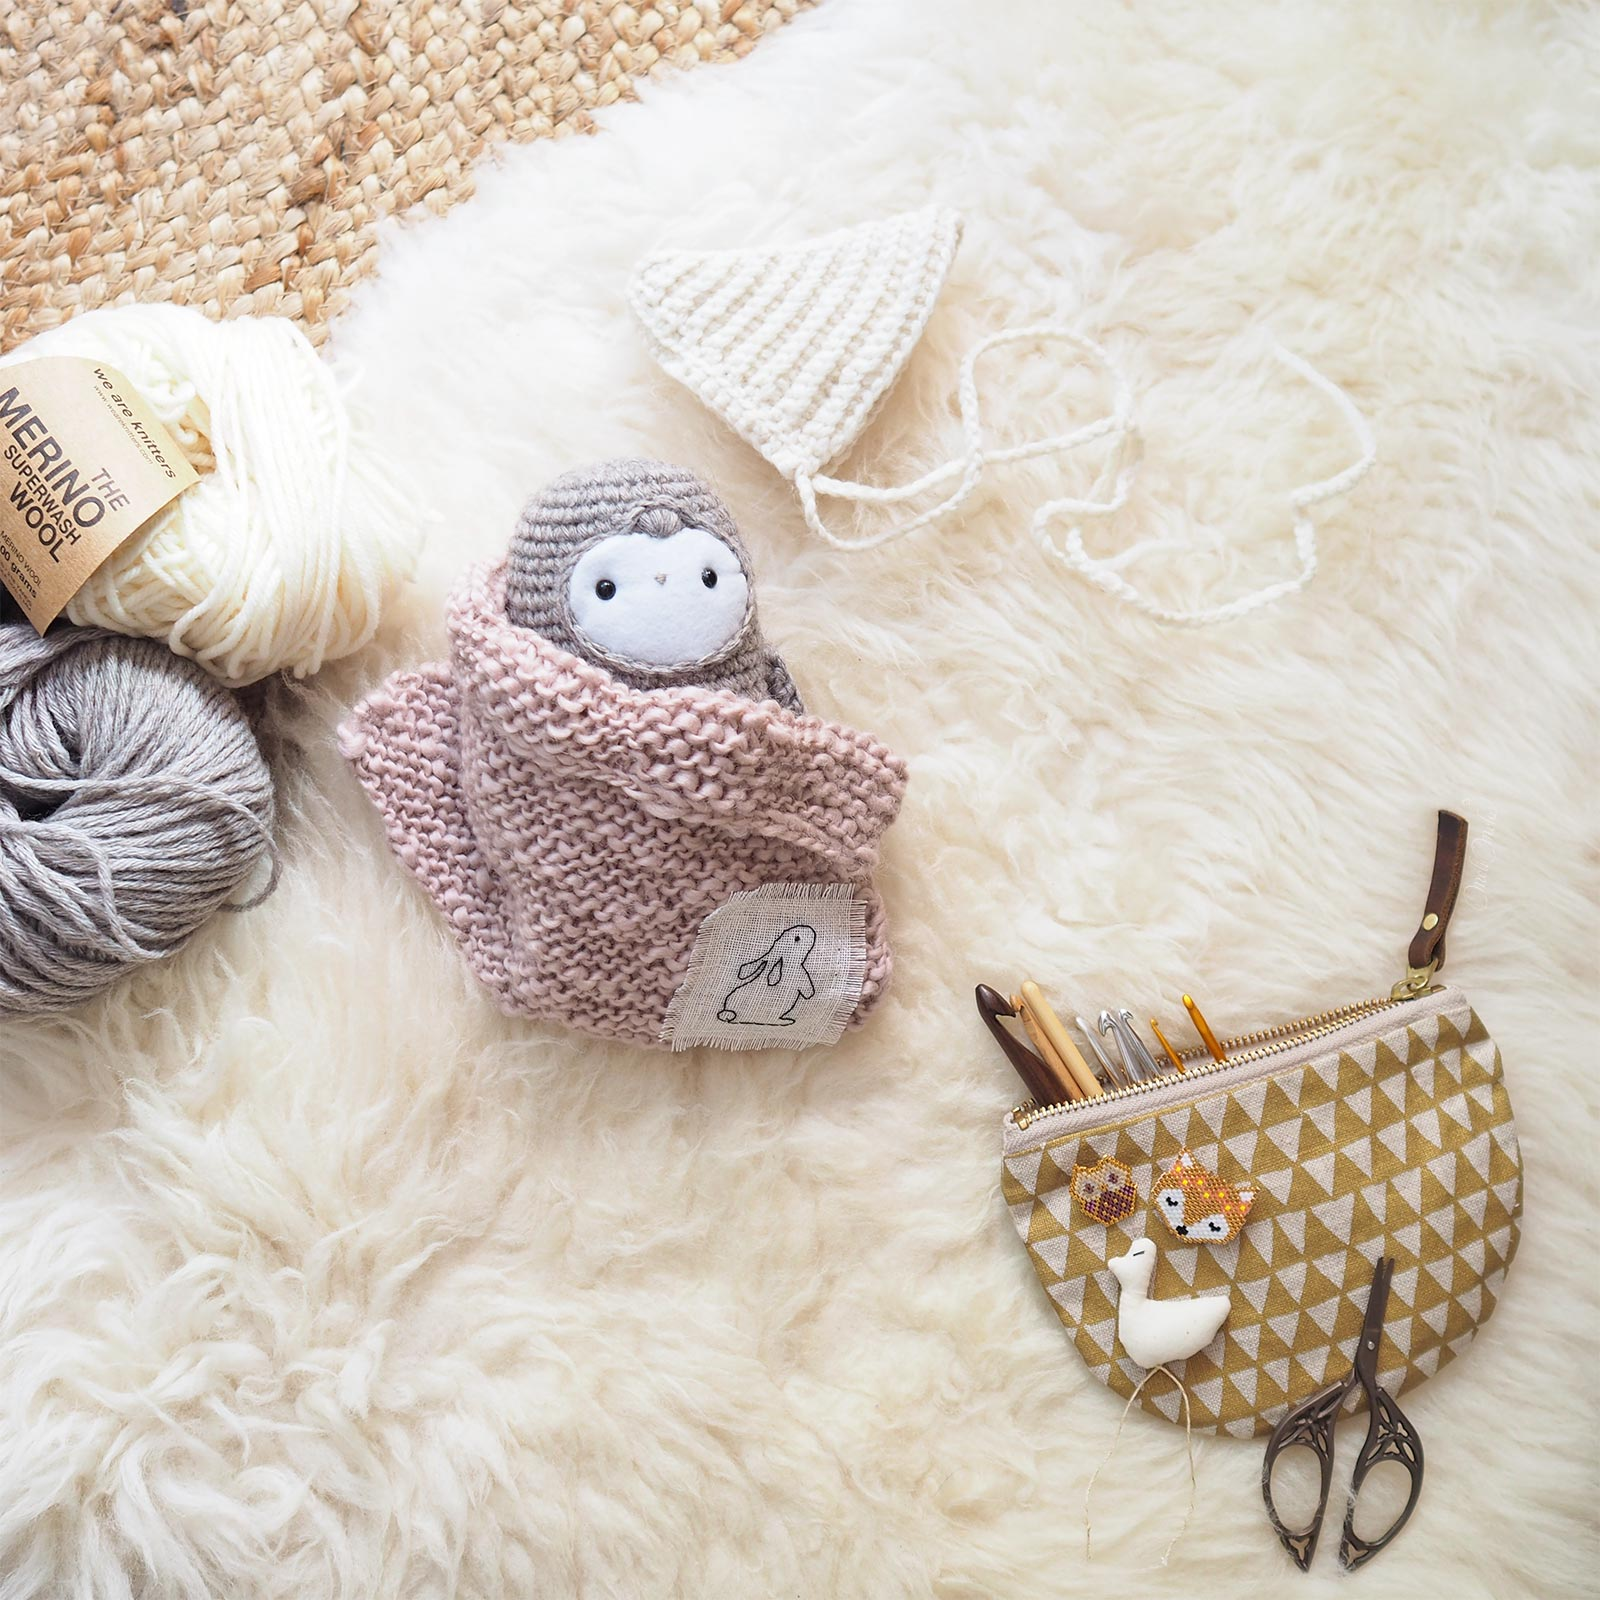 encours crochet owl chouette lutine plaid tricot the wave merimo we are knitters laboutiquedemelimelo